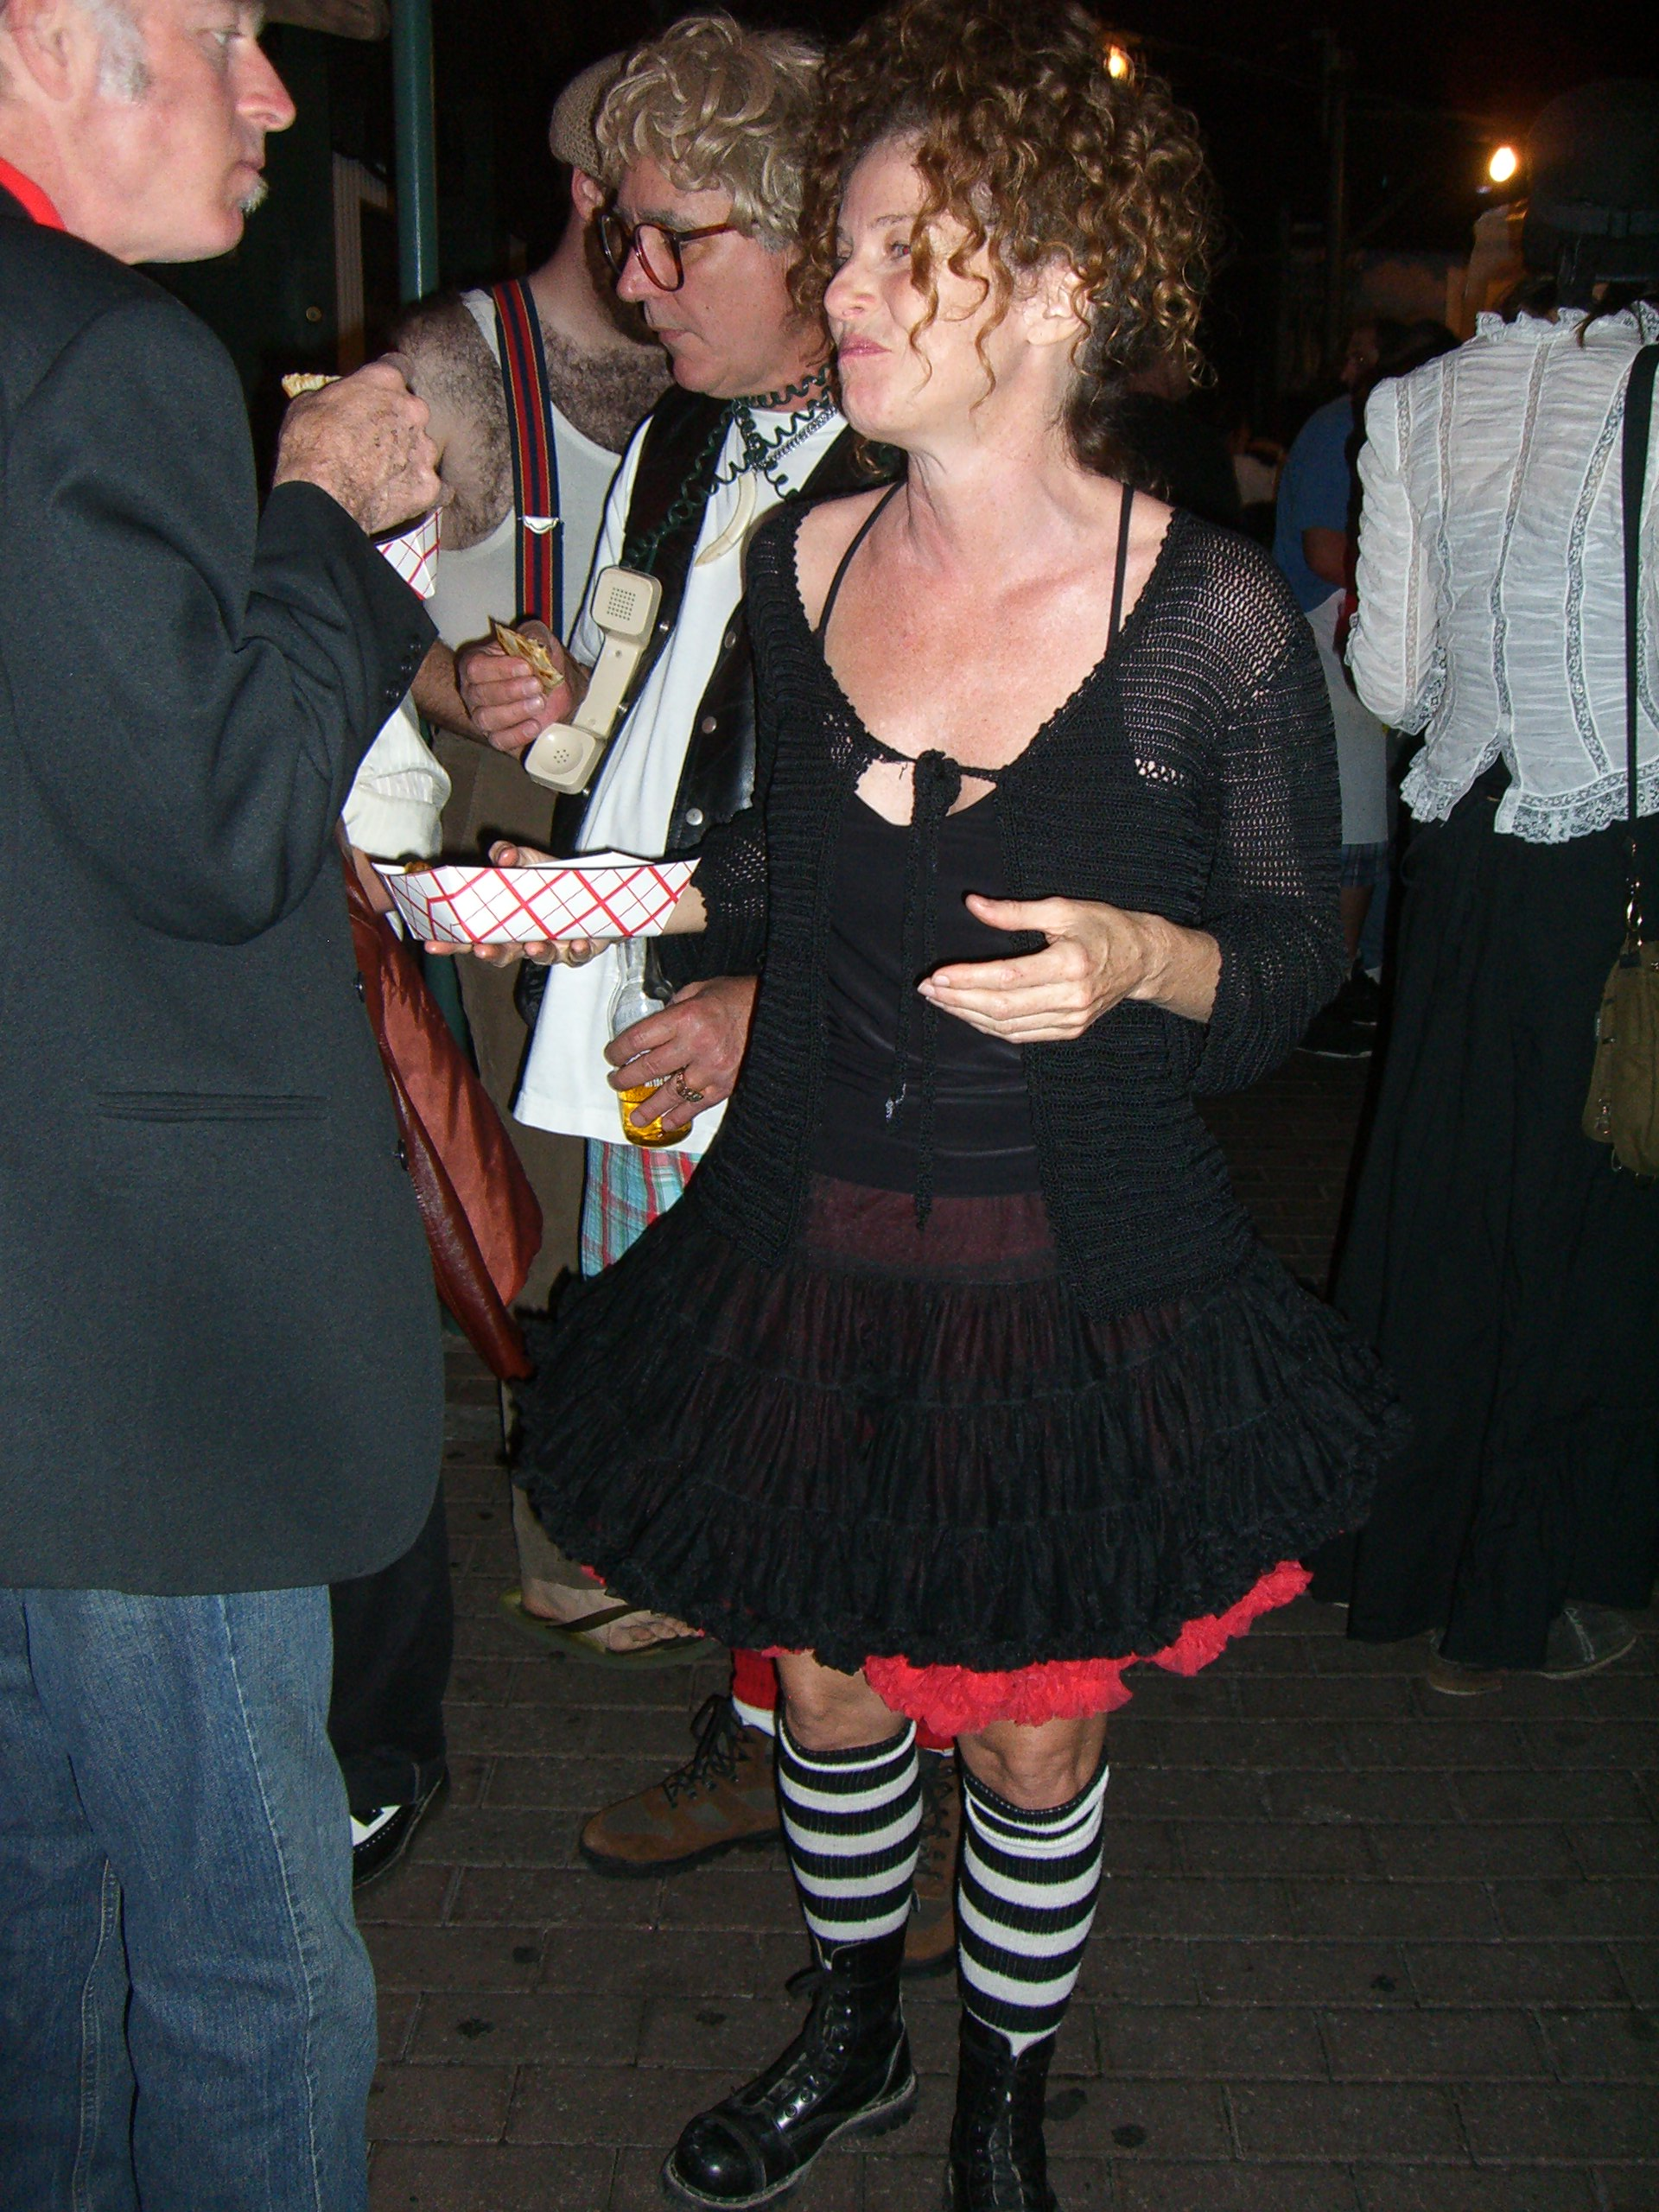 Black, red, white and stripy - steampunk party at the SXSW 2007